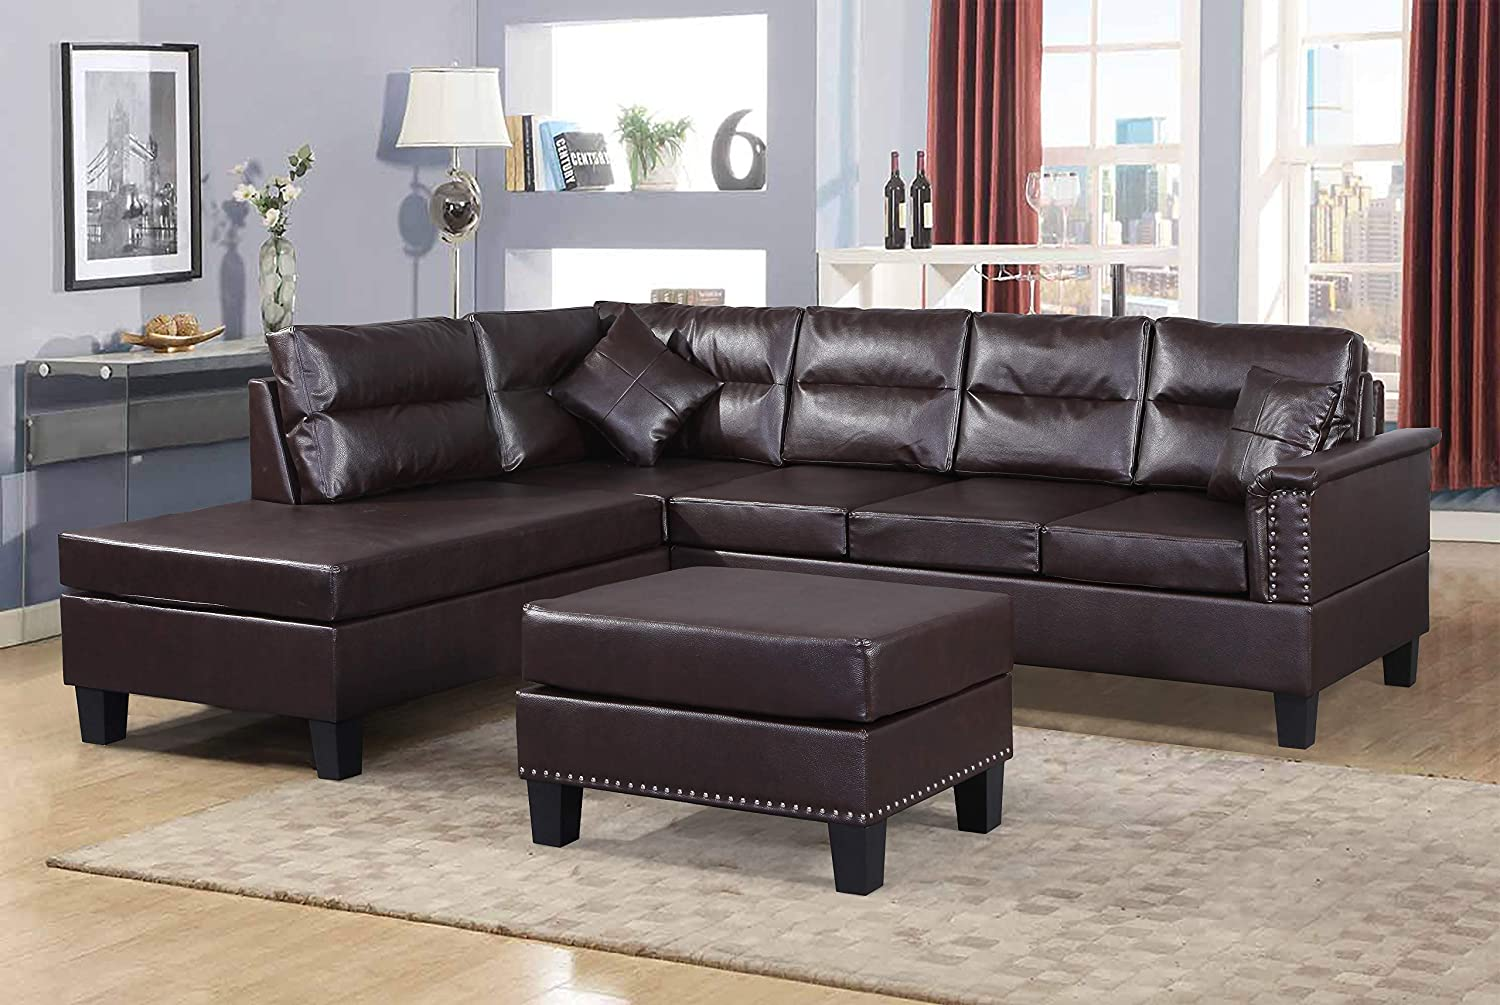 Harper & Bright Designs 3-Piece Sectional Sofa Set PU Leather Cushions Set  with Ottoman (Brown PU Leather)